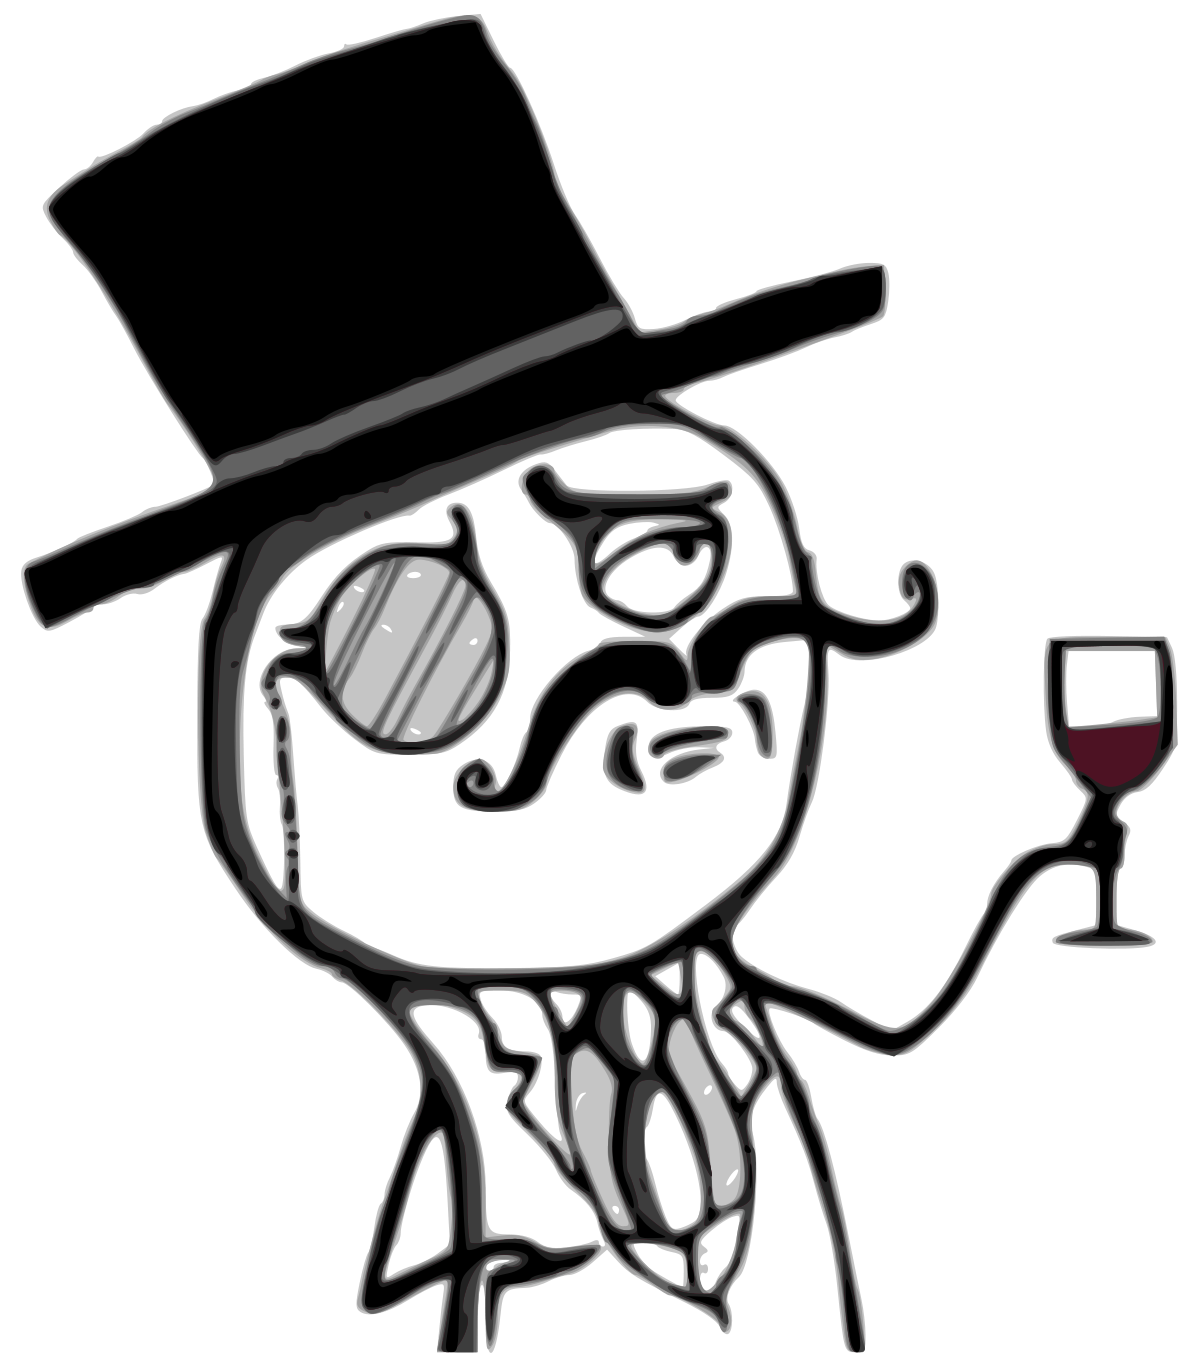 No copyright crown and money clipart png freeuse download LulzSec - Wikipedia png freeuse download